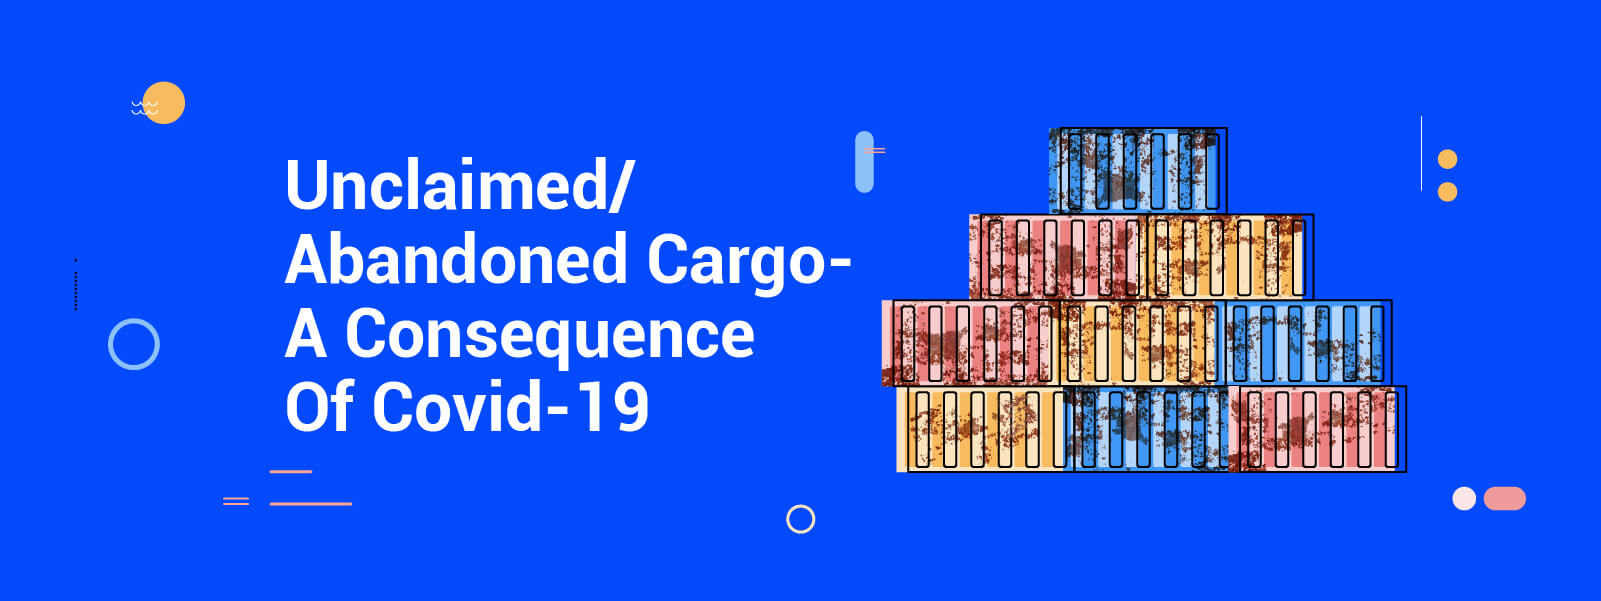 Abandoned Goods: What Happens When Cargo Goes Unclaimed?